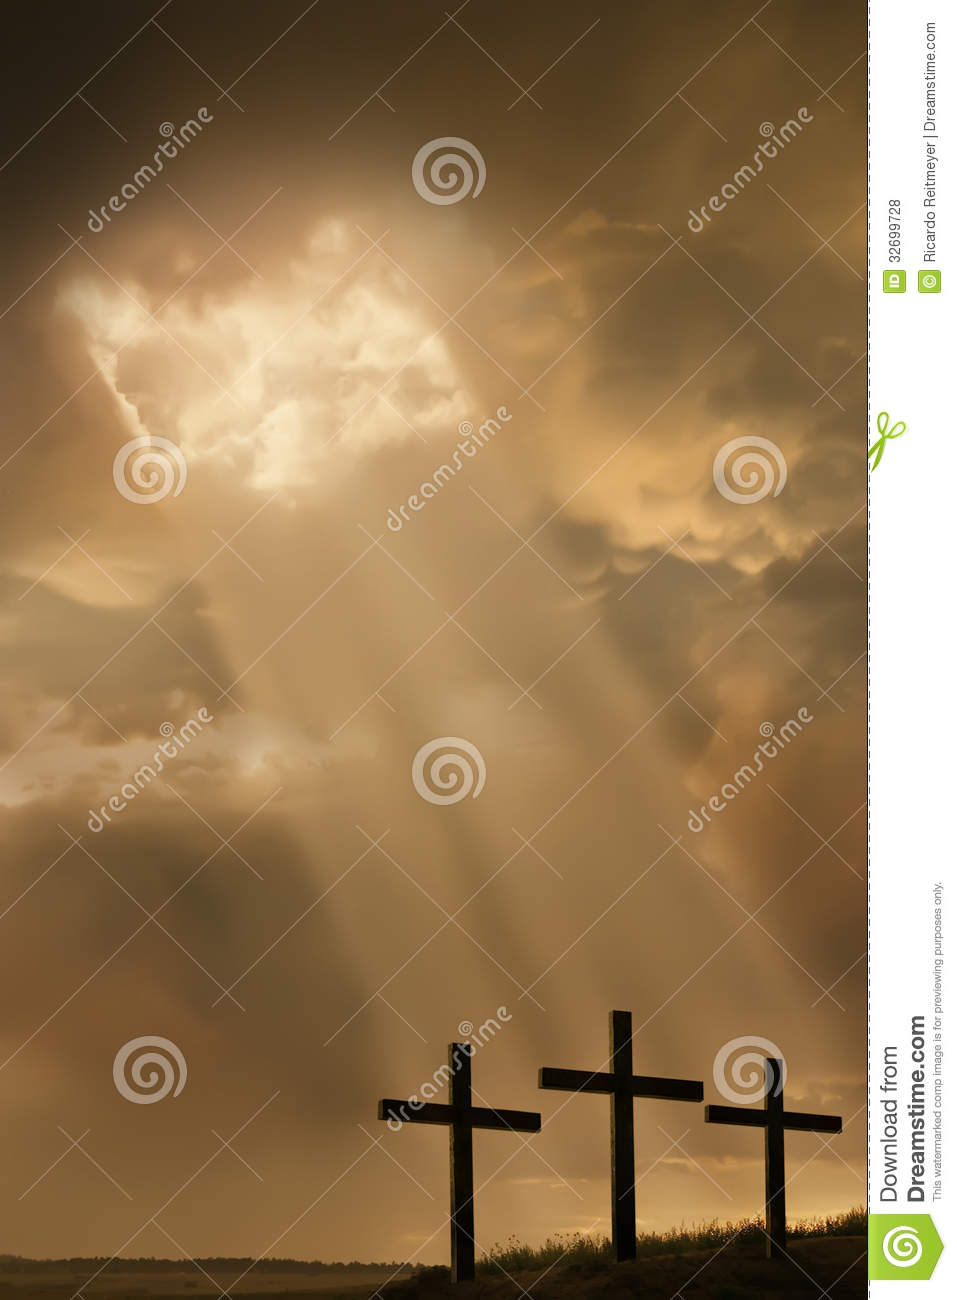 Silhouette of the holy cross on background of storm clouds stock - Inspirational Religous Illustration Breaking Storm Royalty Free Stock Photos